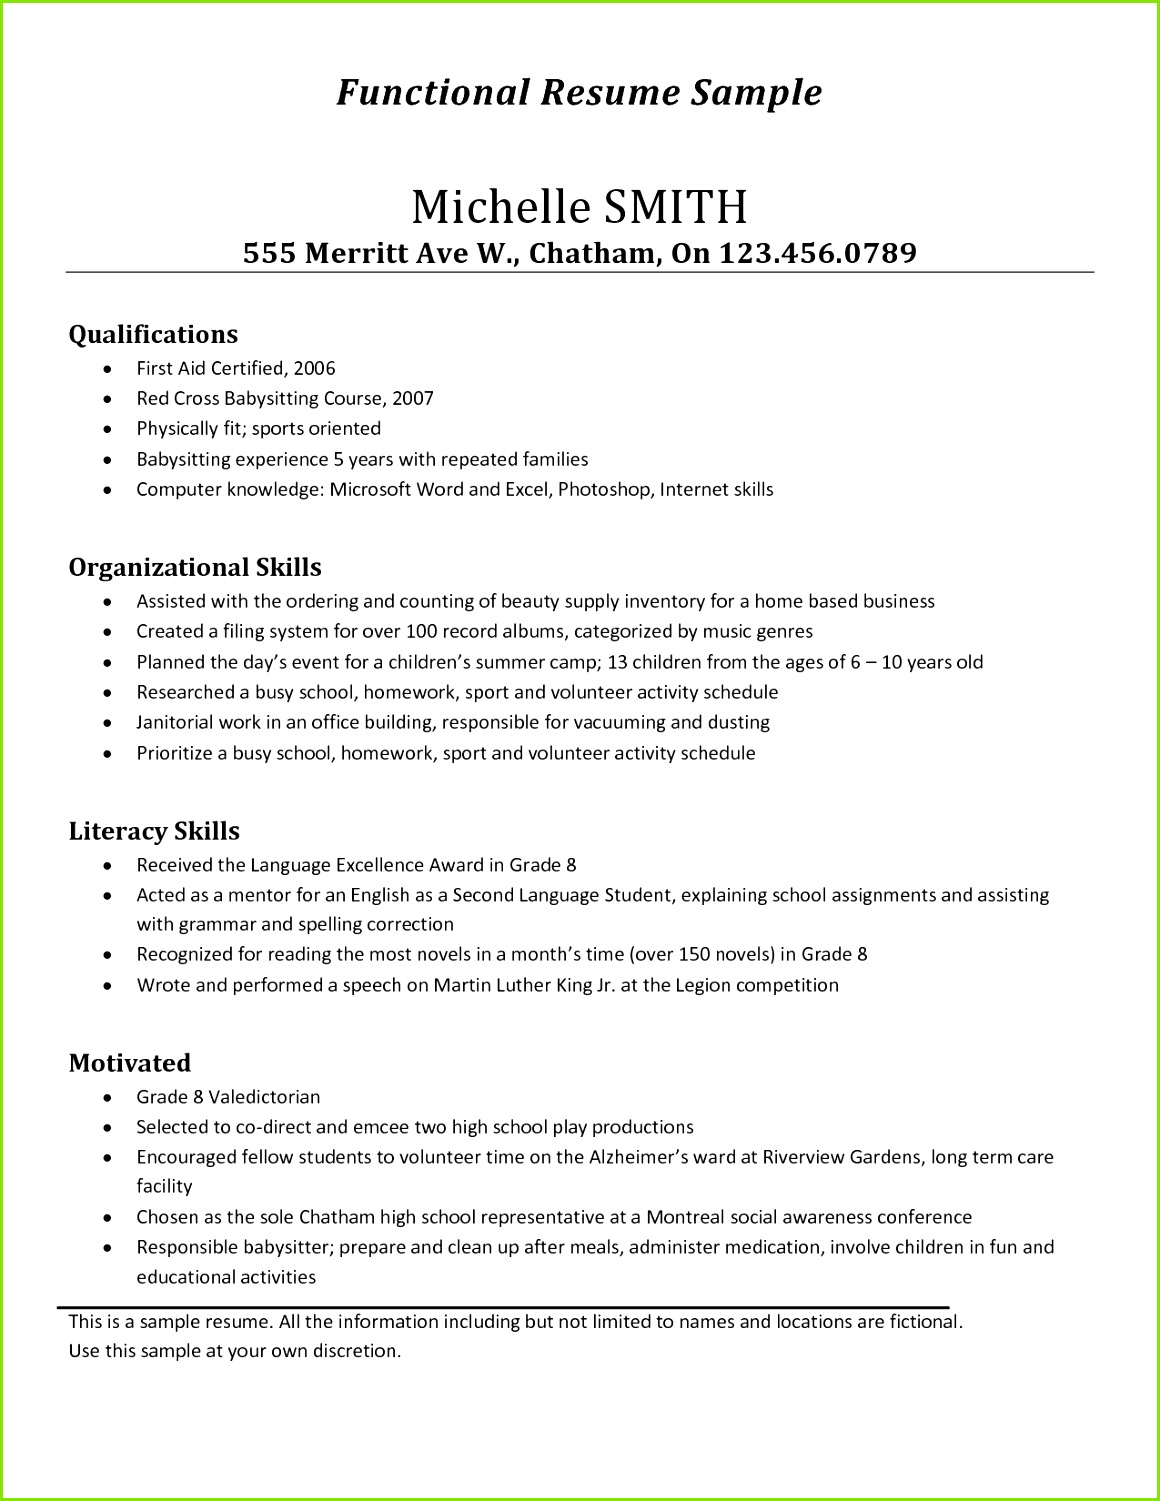 Nanny Job Description for Resume Inspirational Resume for Babysitter Techtrontechnologies Nanny Job Description for Resume